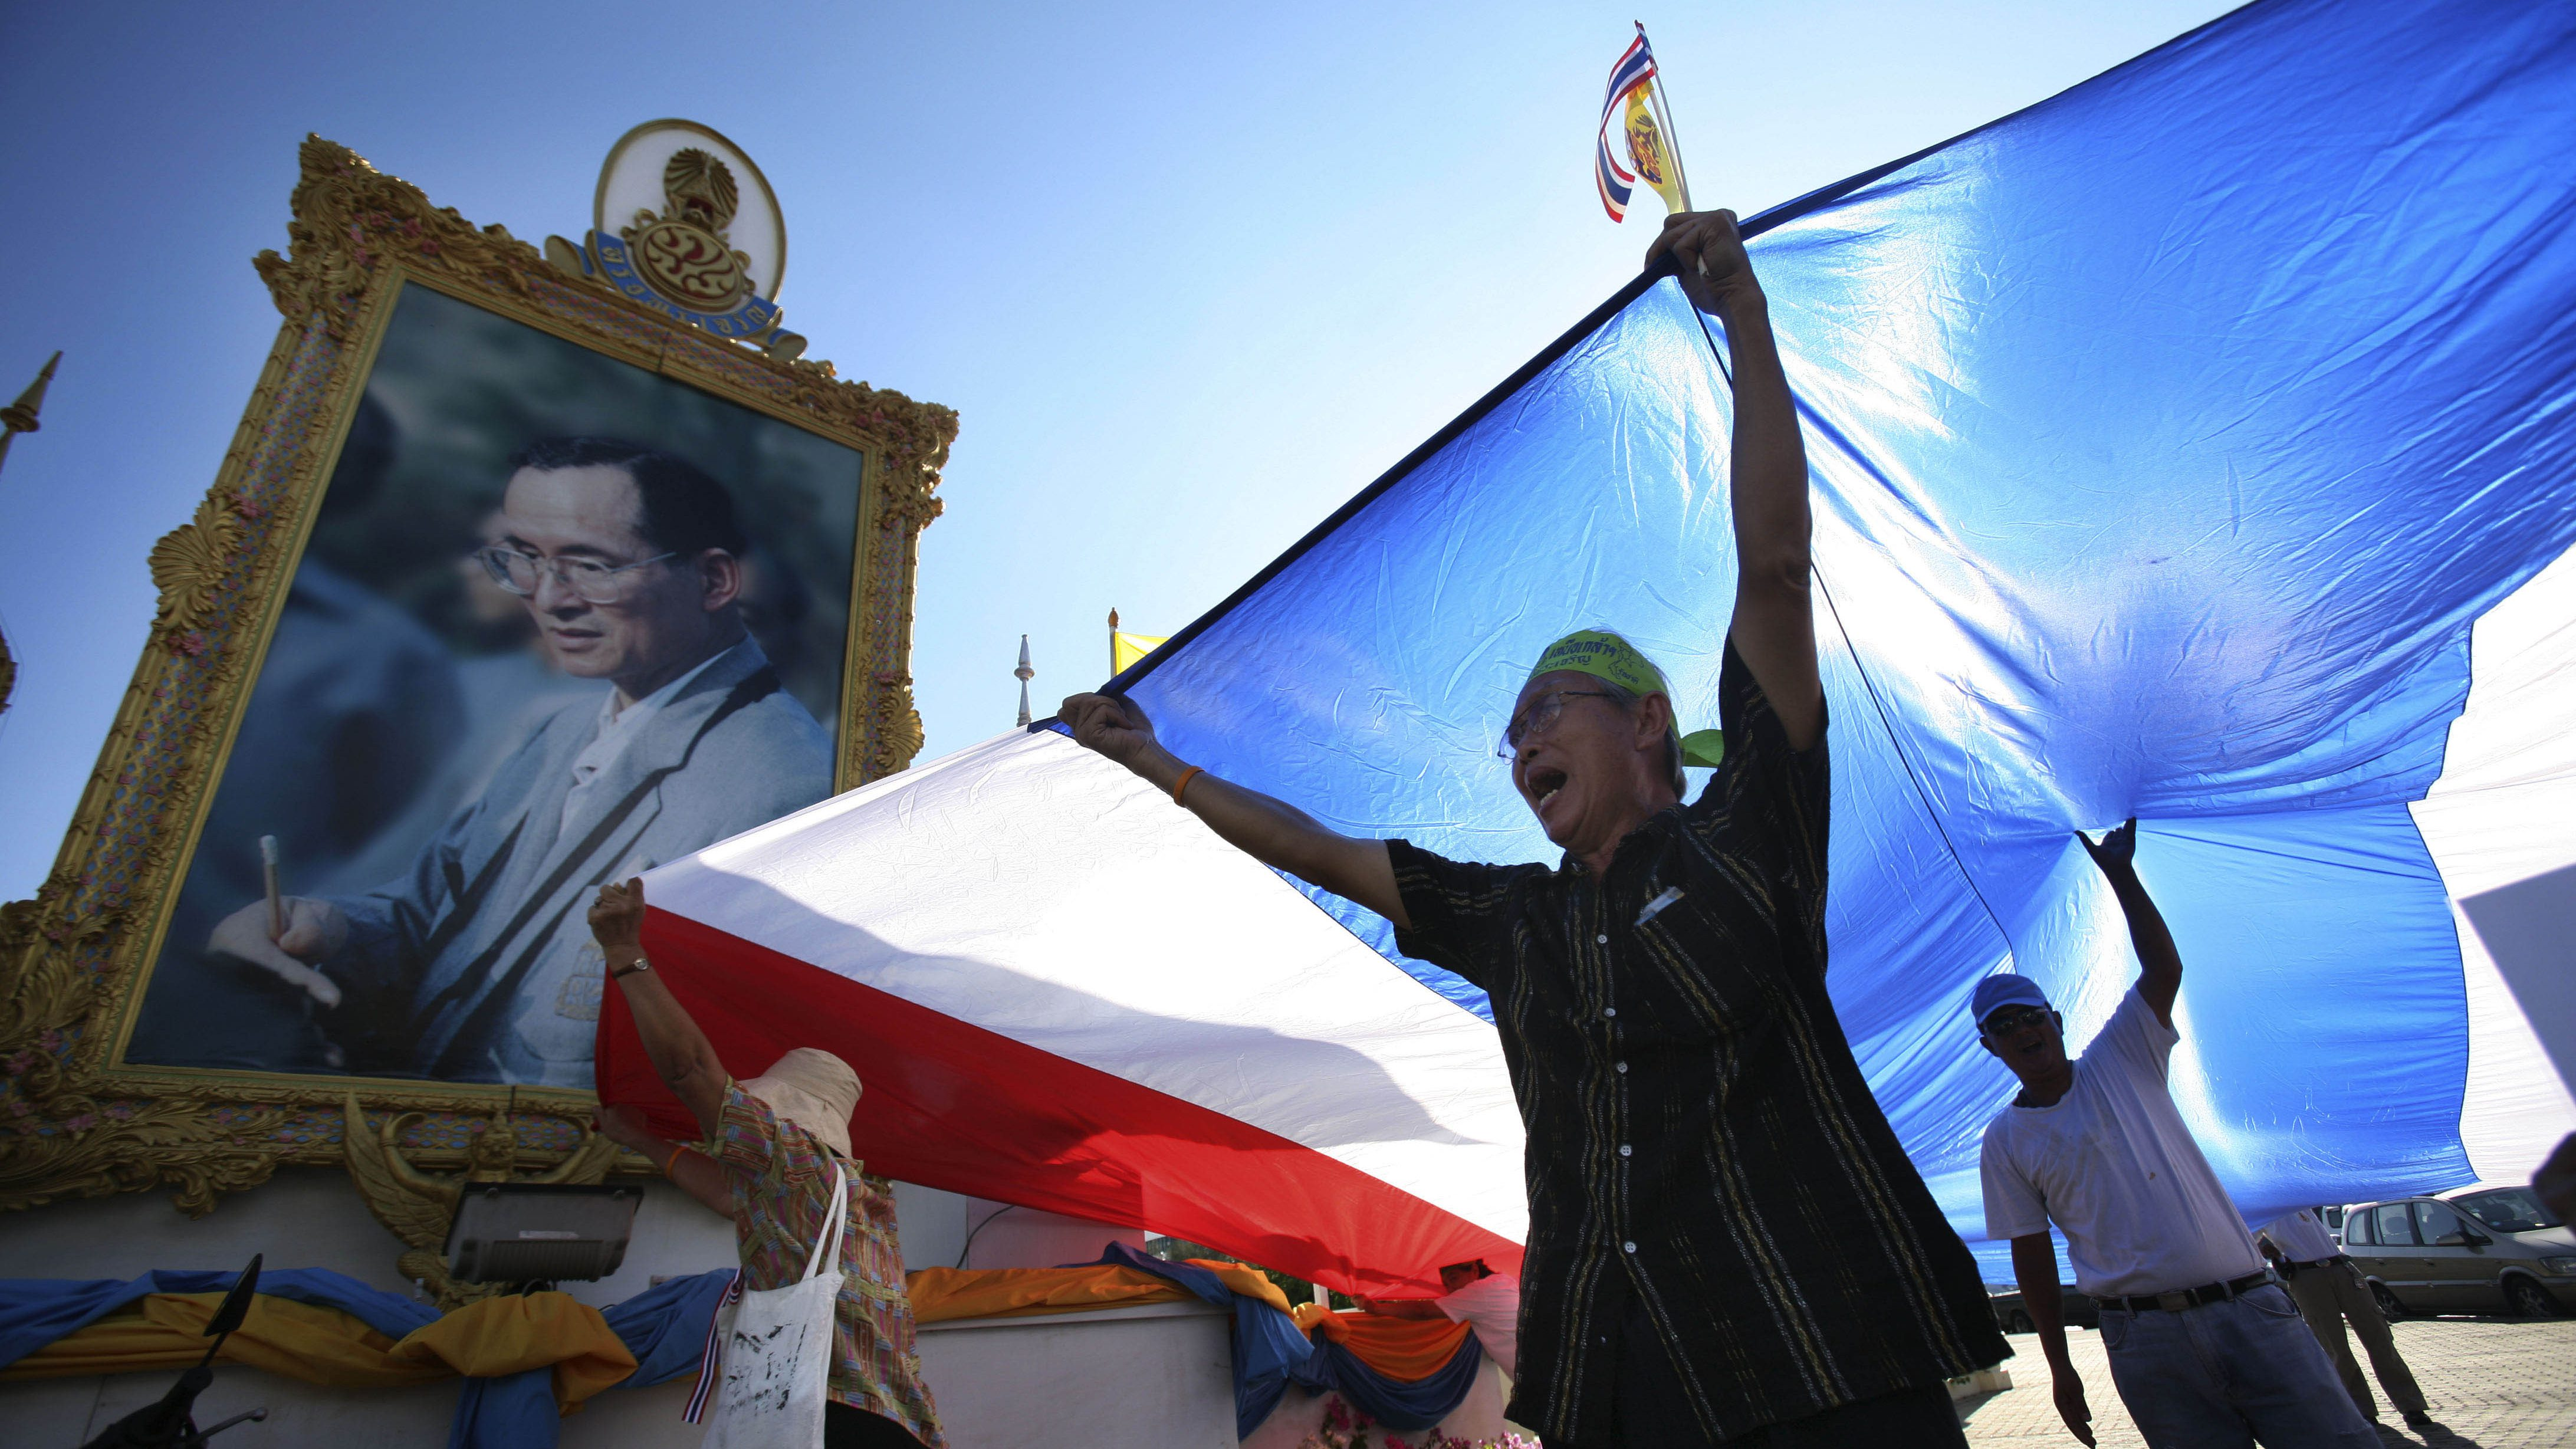 Pro-government supporters chant slogans with a Thai national flag in front of a portrait of King Bhumibol Adulyadej, Sunday, May 9, 2010 in Bangkok, Thailand. Prime Minister Abhisit Vejjajiva pleaded Sunday for an end to two months of street protests paralyzing part of the capital and an acceptance of his reconciliation plan that has been stalled by fresh violence. (AP Photo/Wally Santana)